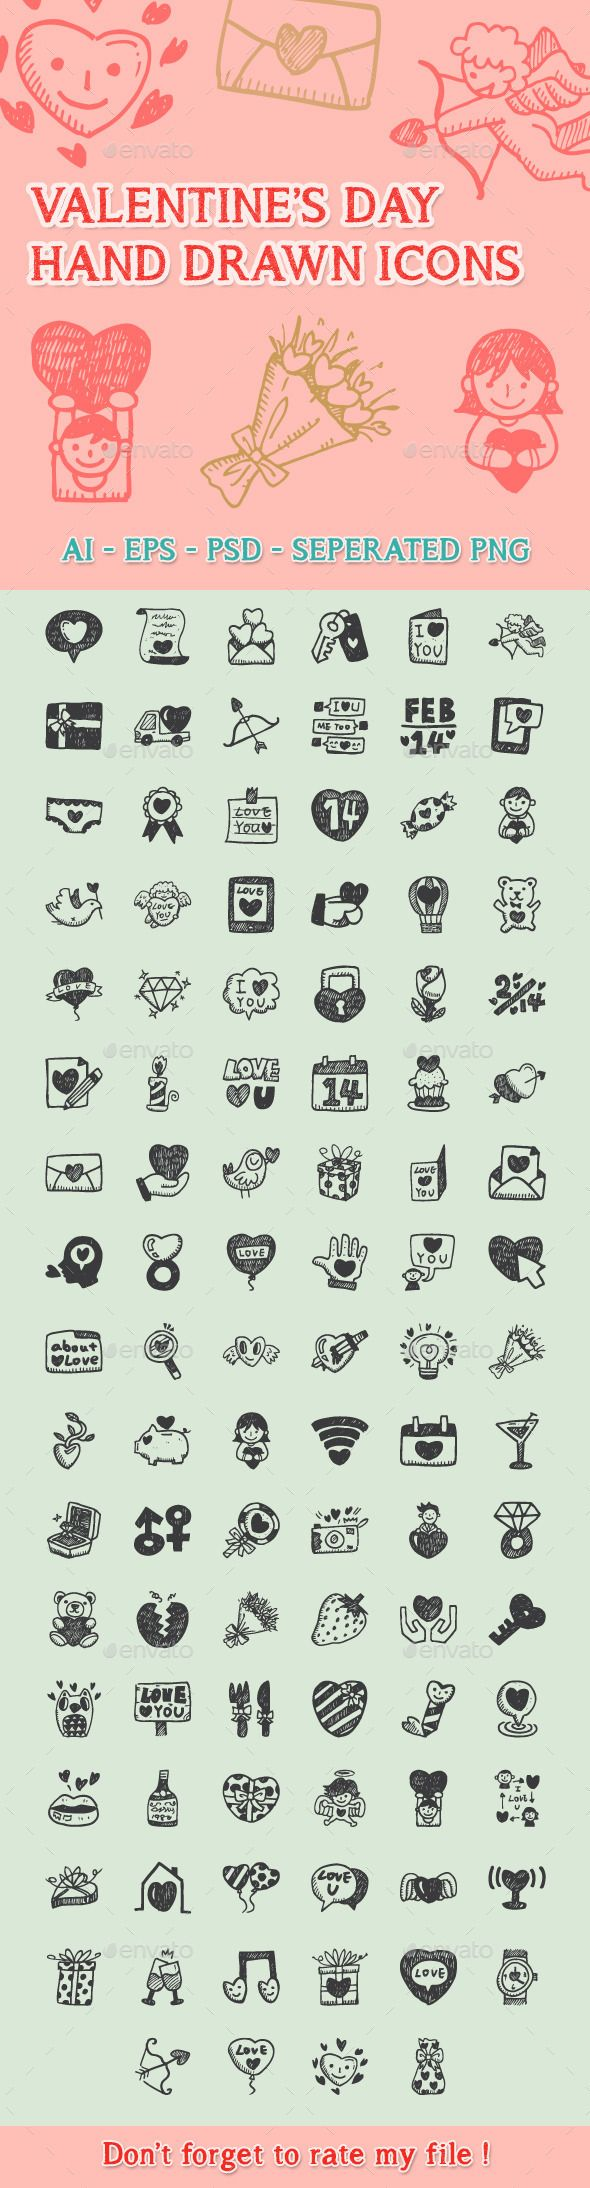 Love Hand Drawn Icons - Seasonal Icons